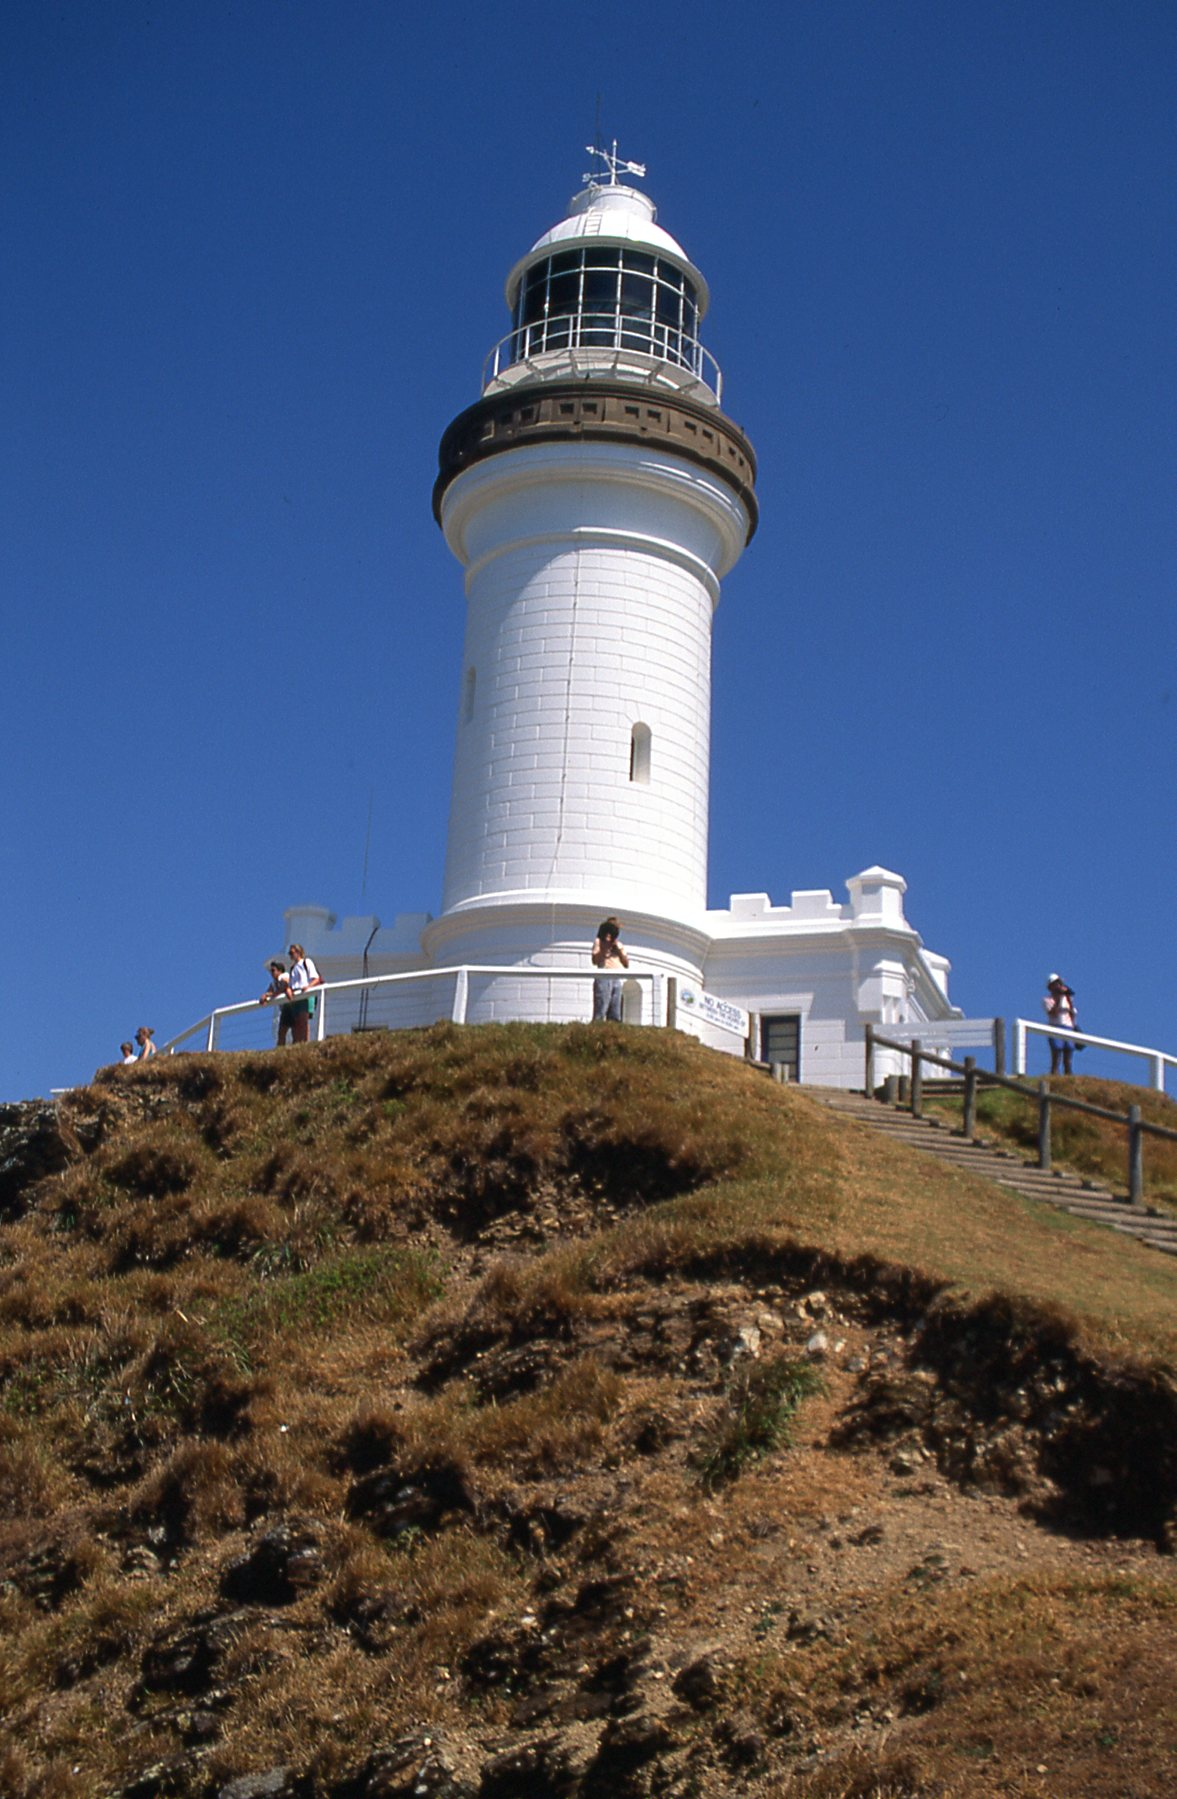 The Lighthouse in Brisbane